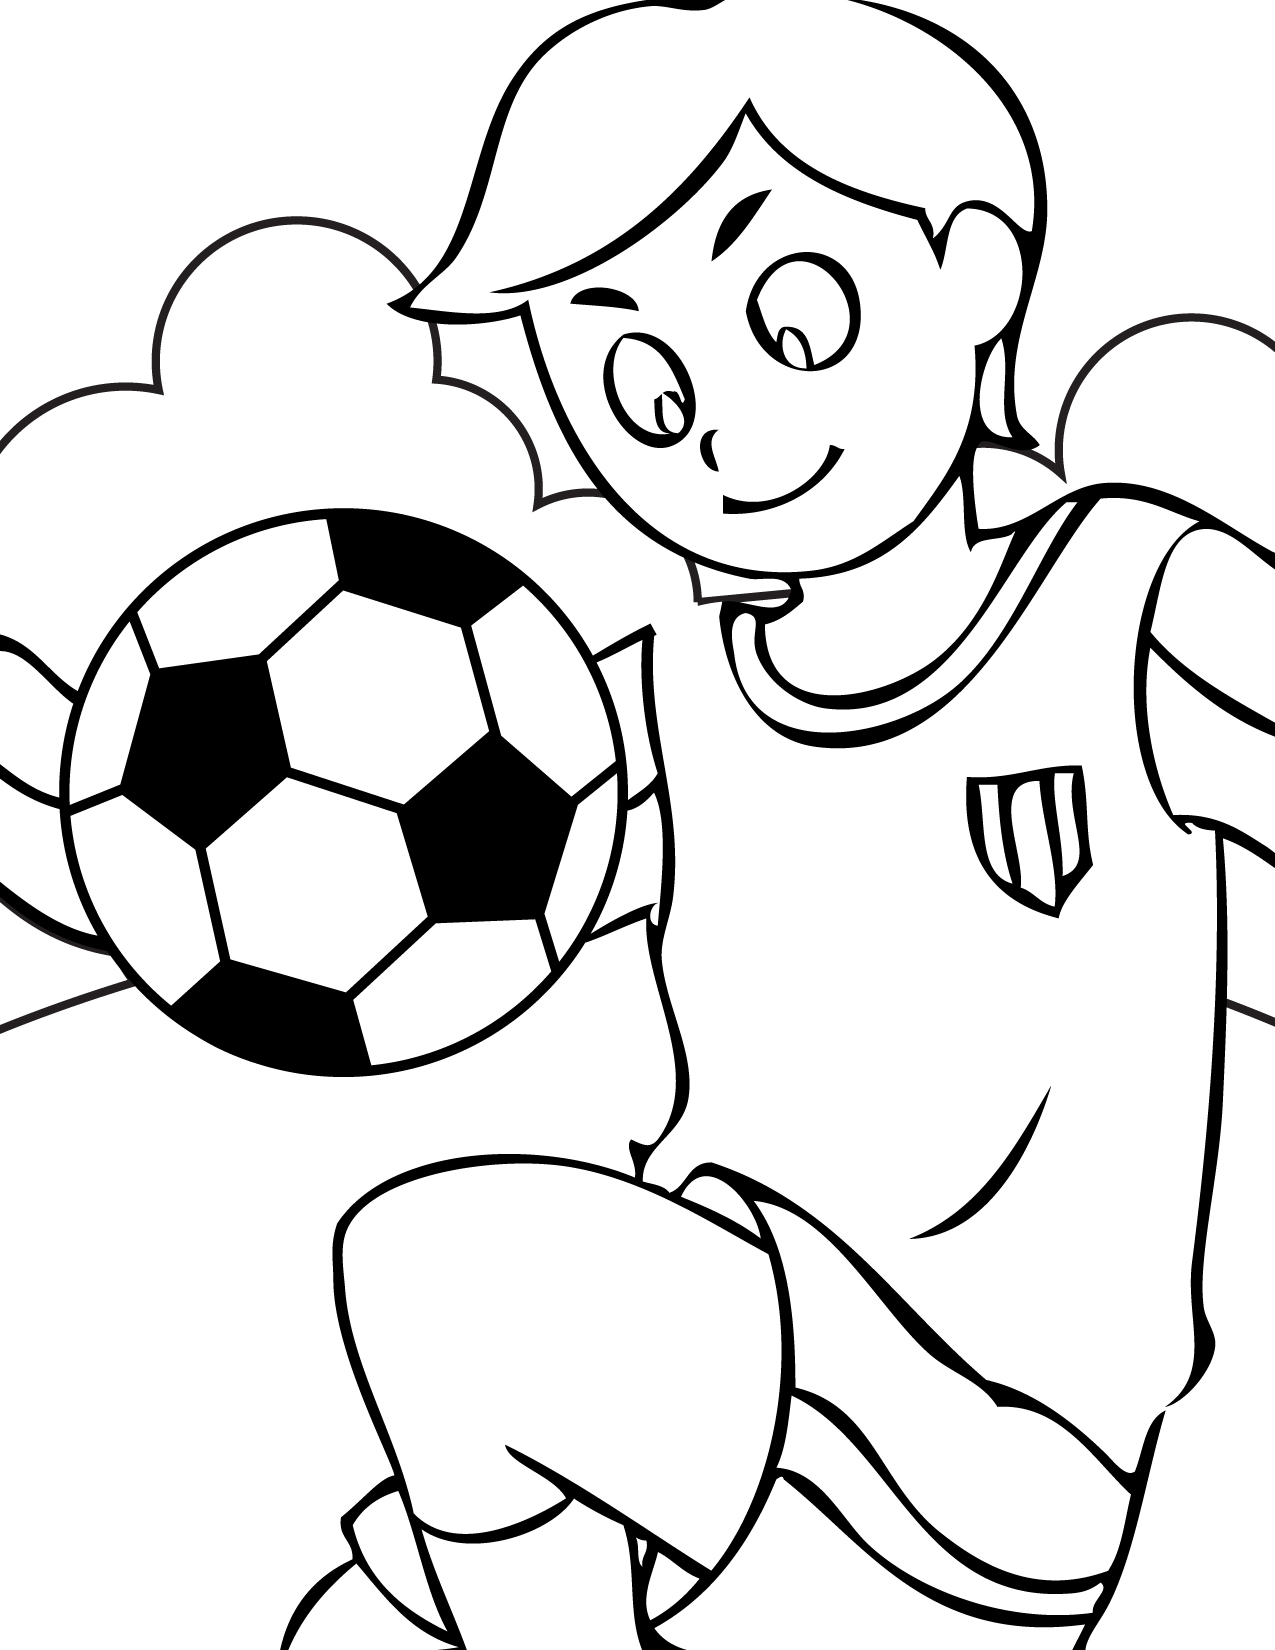 Free Kids Sports Pictures Download Free Clip Art Free